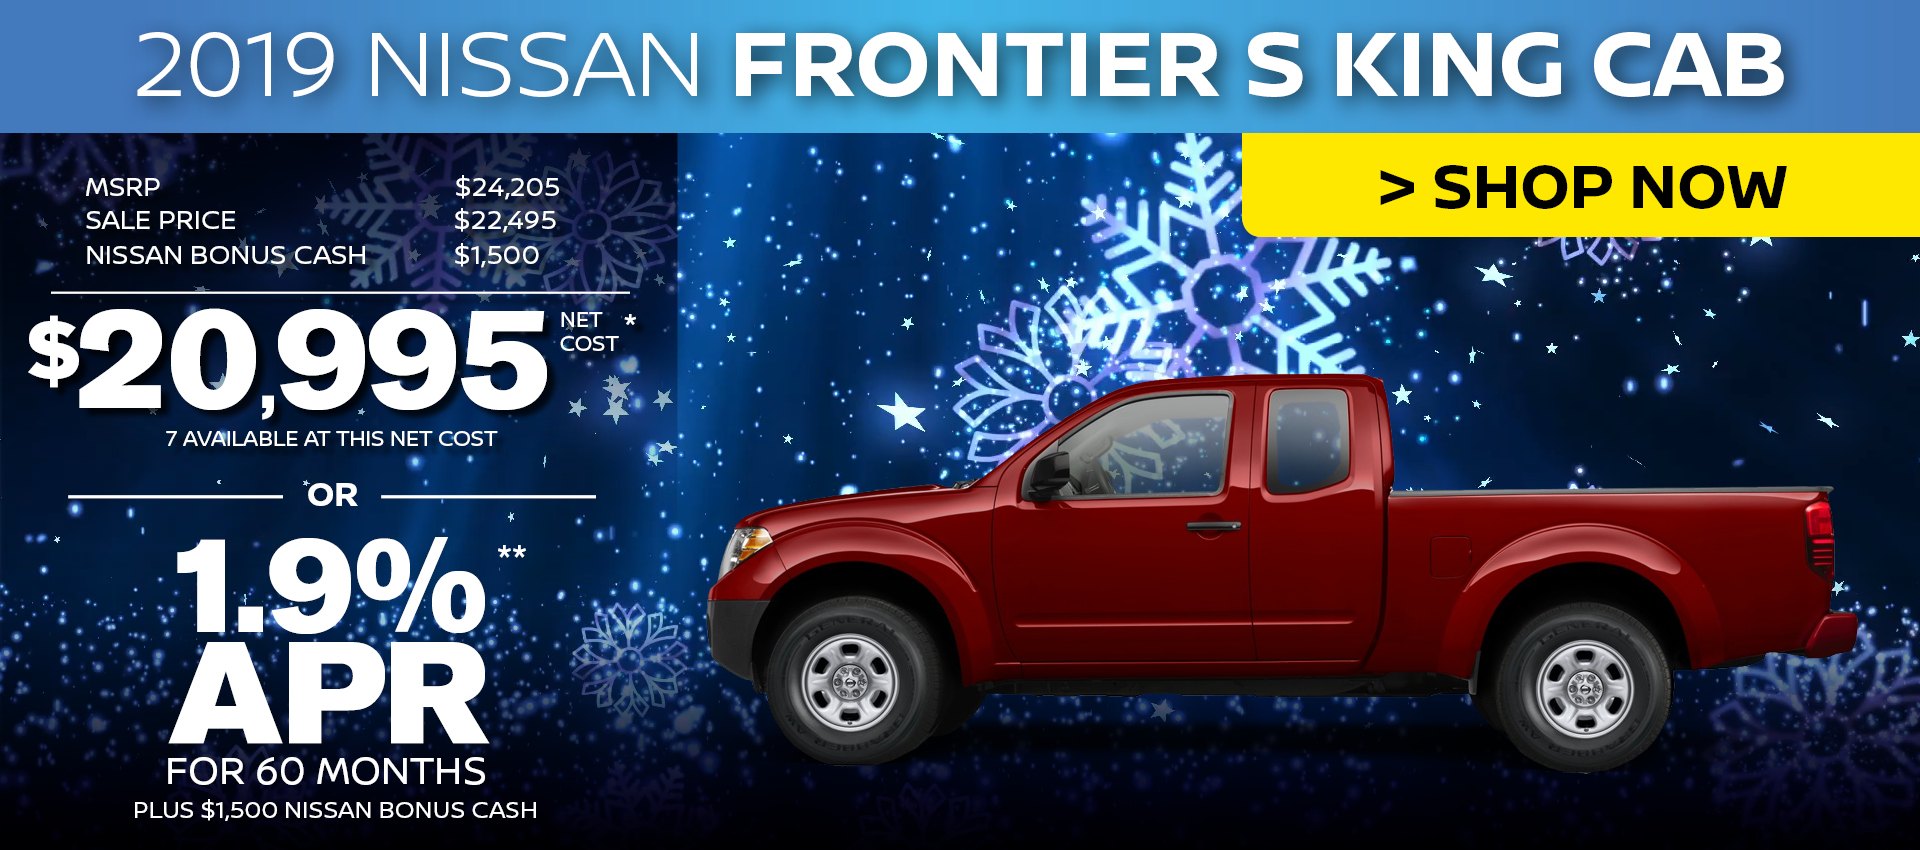 Mossy Nissan - Nissan Frontier S King HP